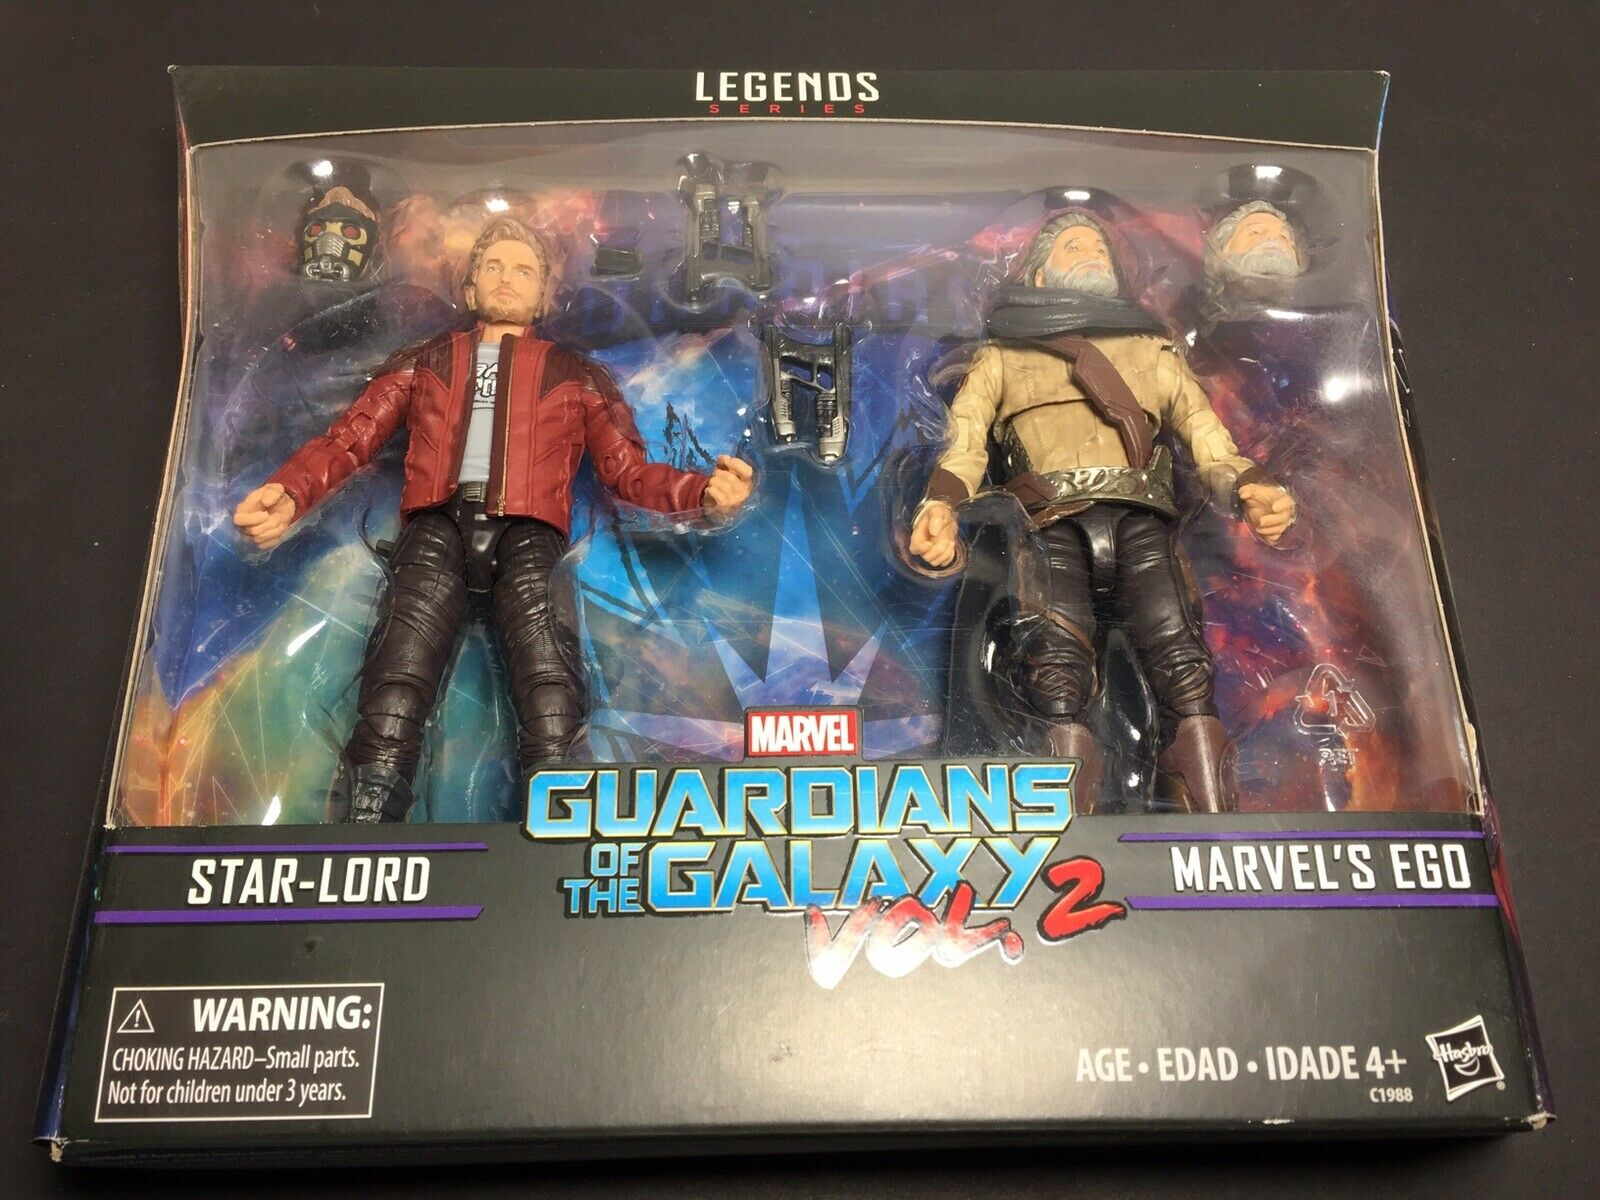 MARVEL Legends Guardians of the the the Galaxy Vol. 2 Marvel's Ego & Star-Lord - NEW    b72579